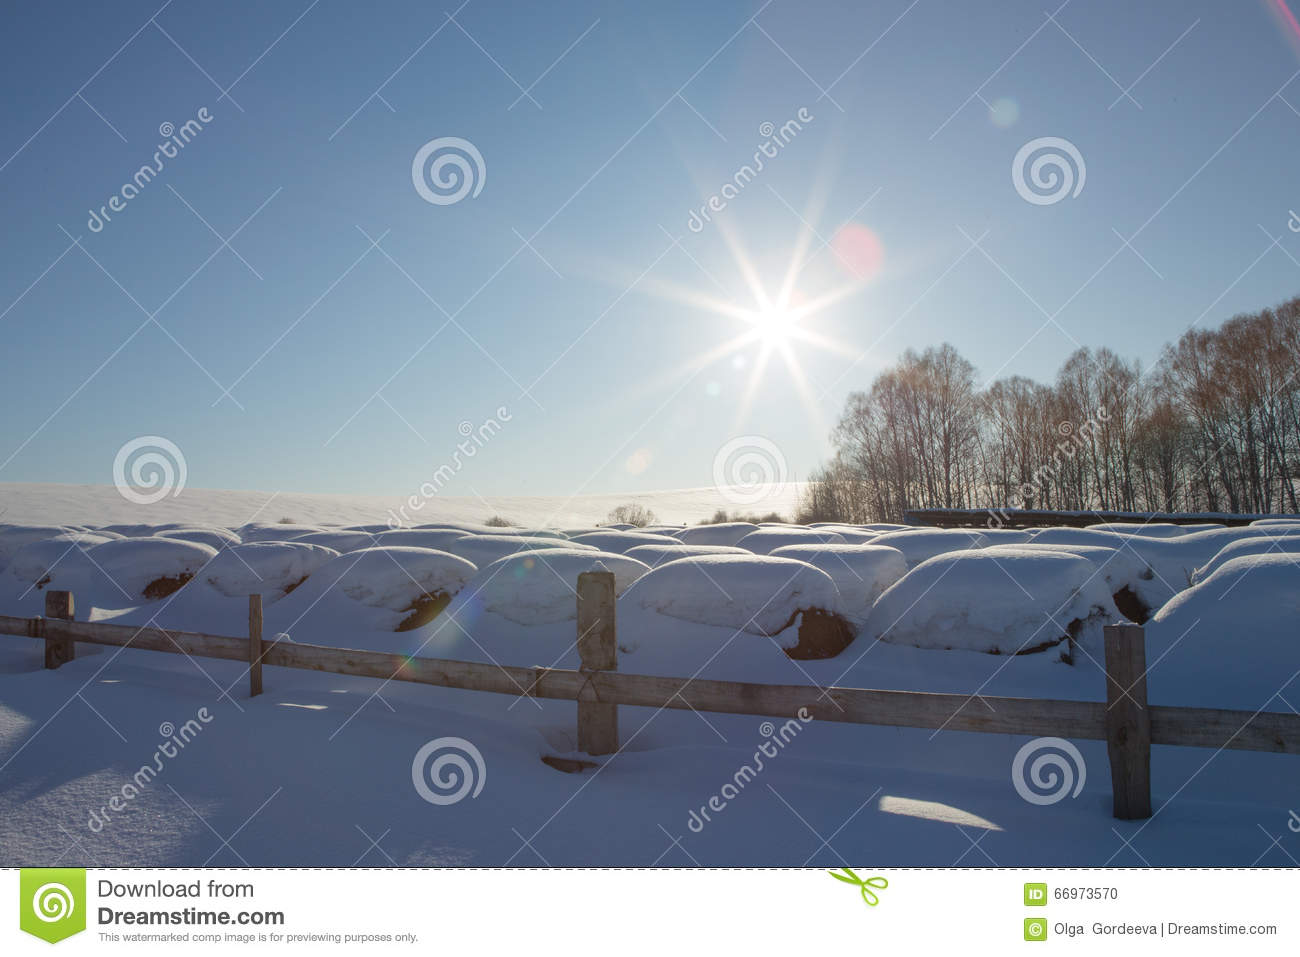 Bales of hay in a winter field under the snow. haystacks in the farm